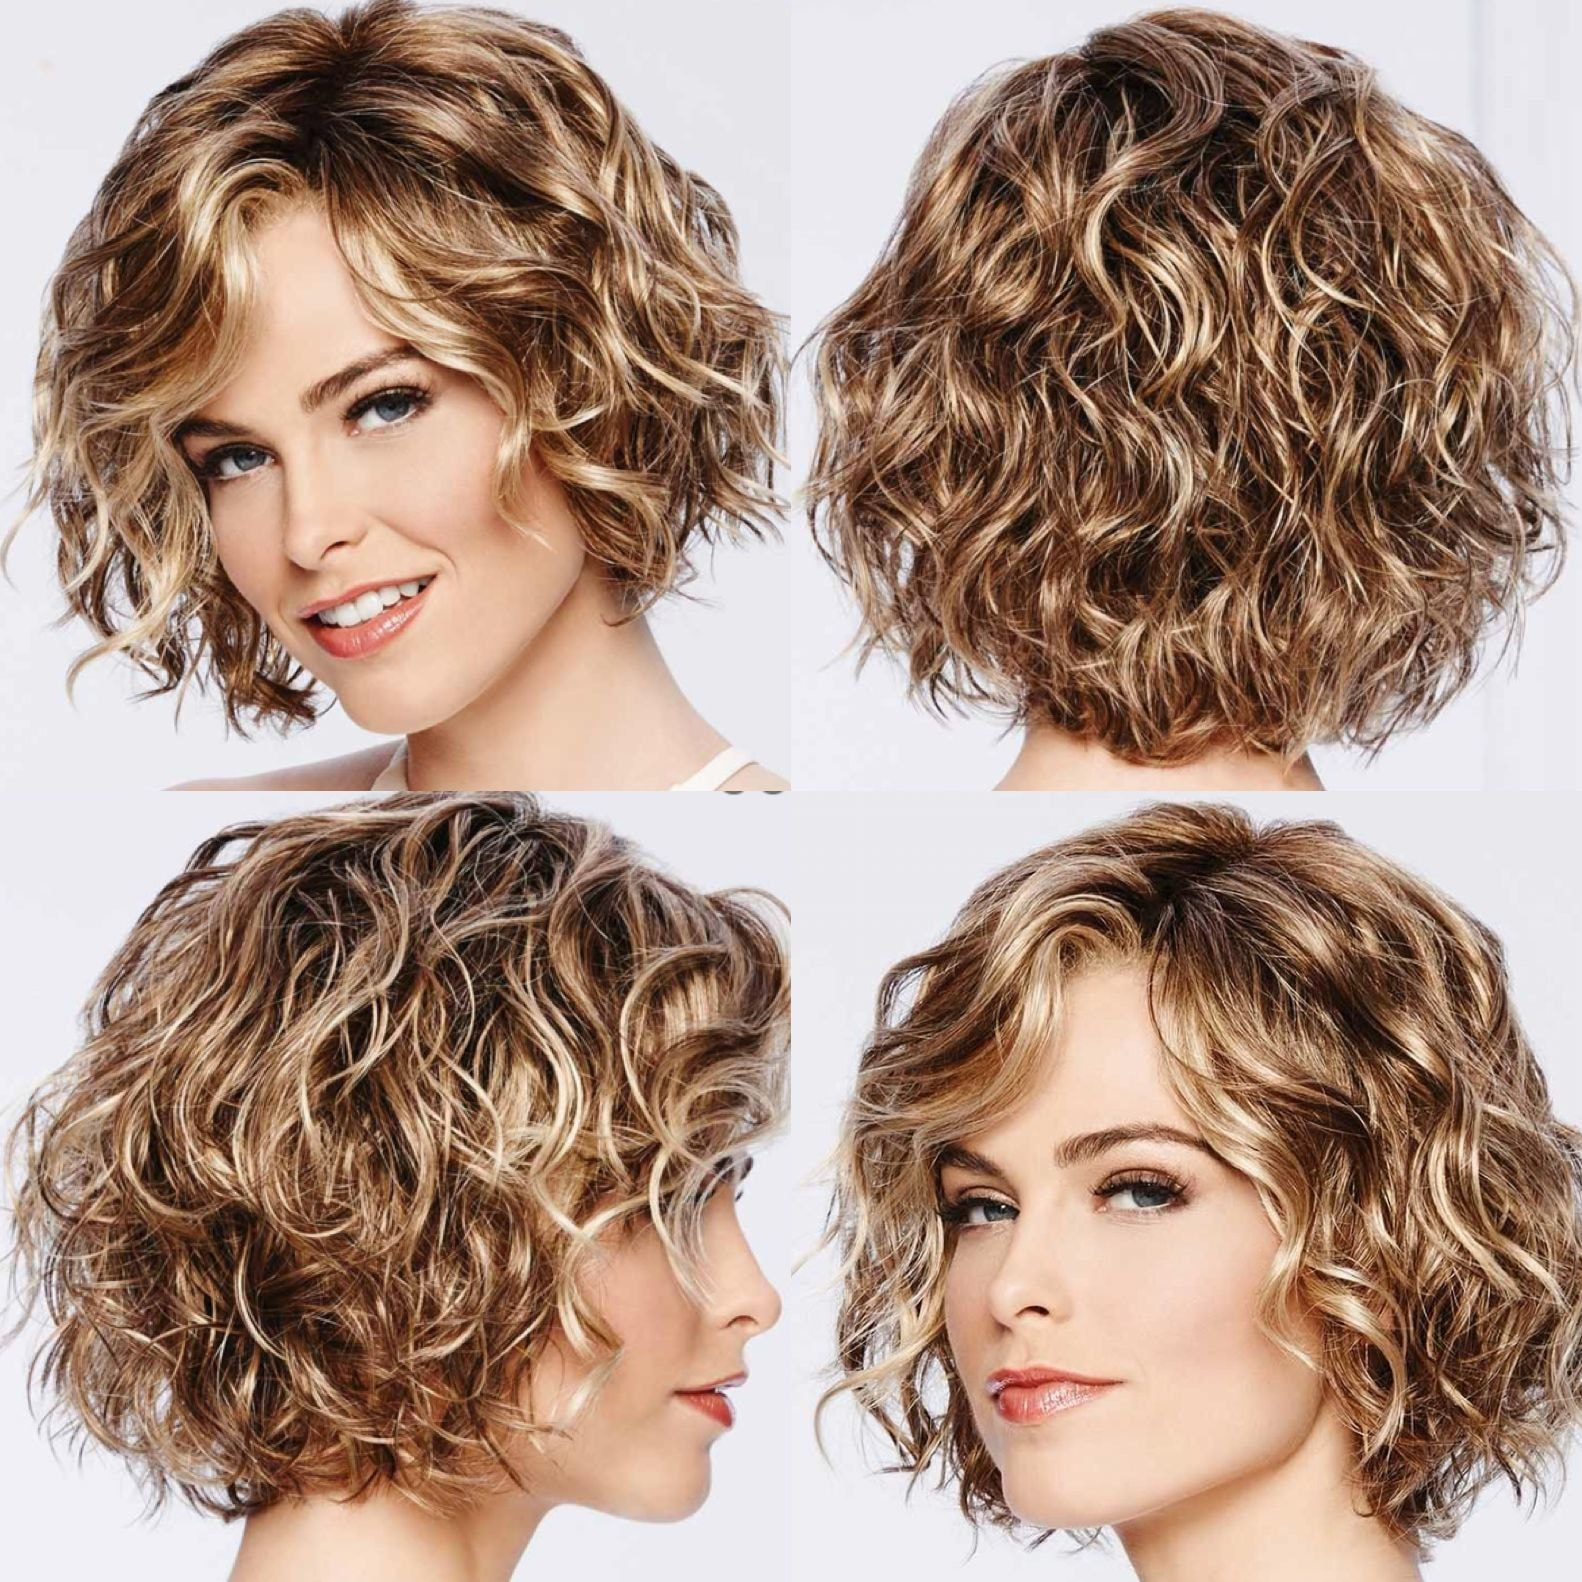 Perm Short Hair types